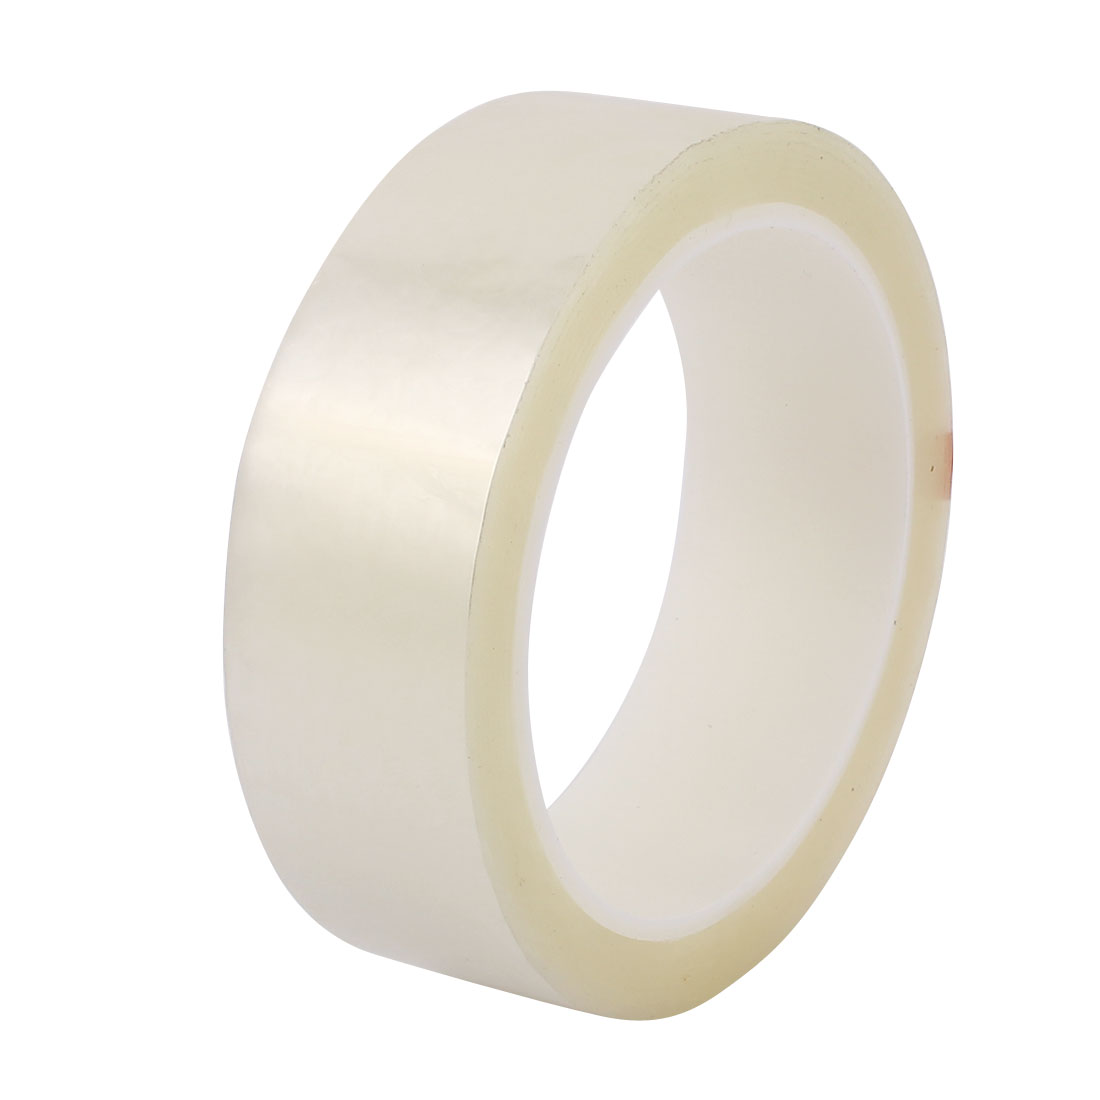 18mm Width 32.8Ft Length PVC Self Adhesive Insulating Electrical Tape White